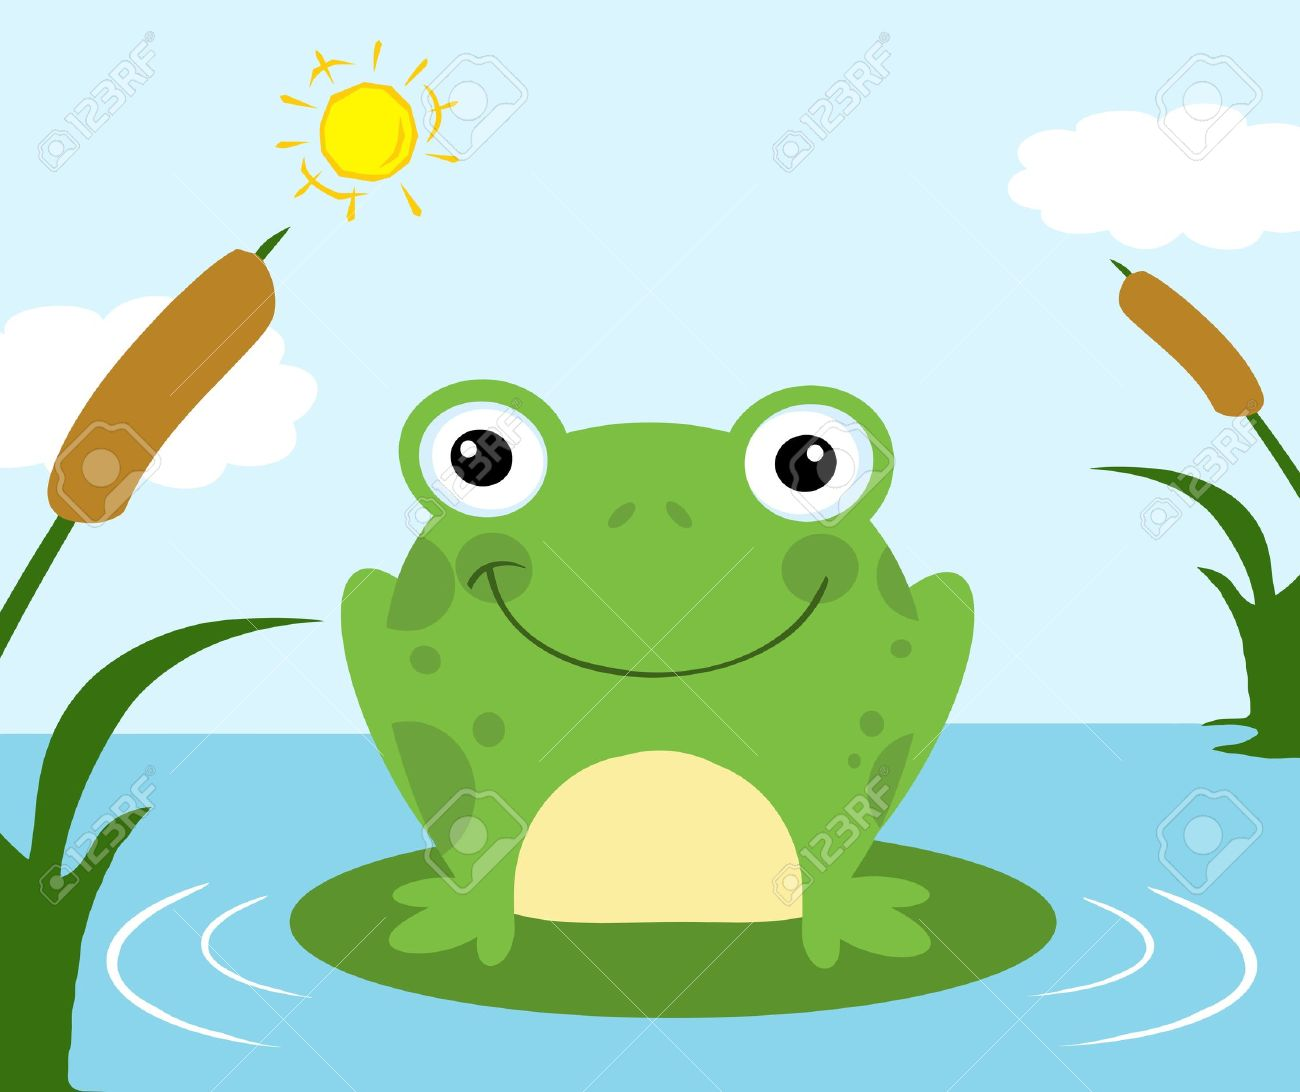 cartoon frog pictures - photo #7